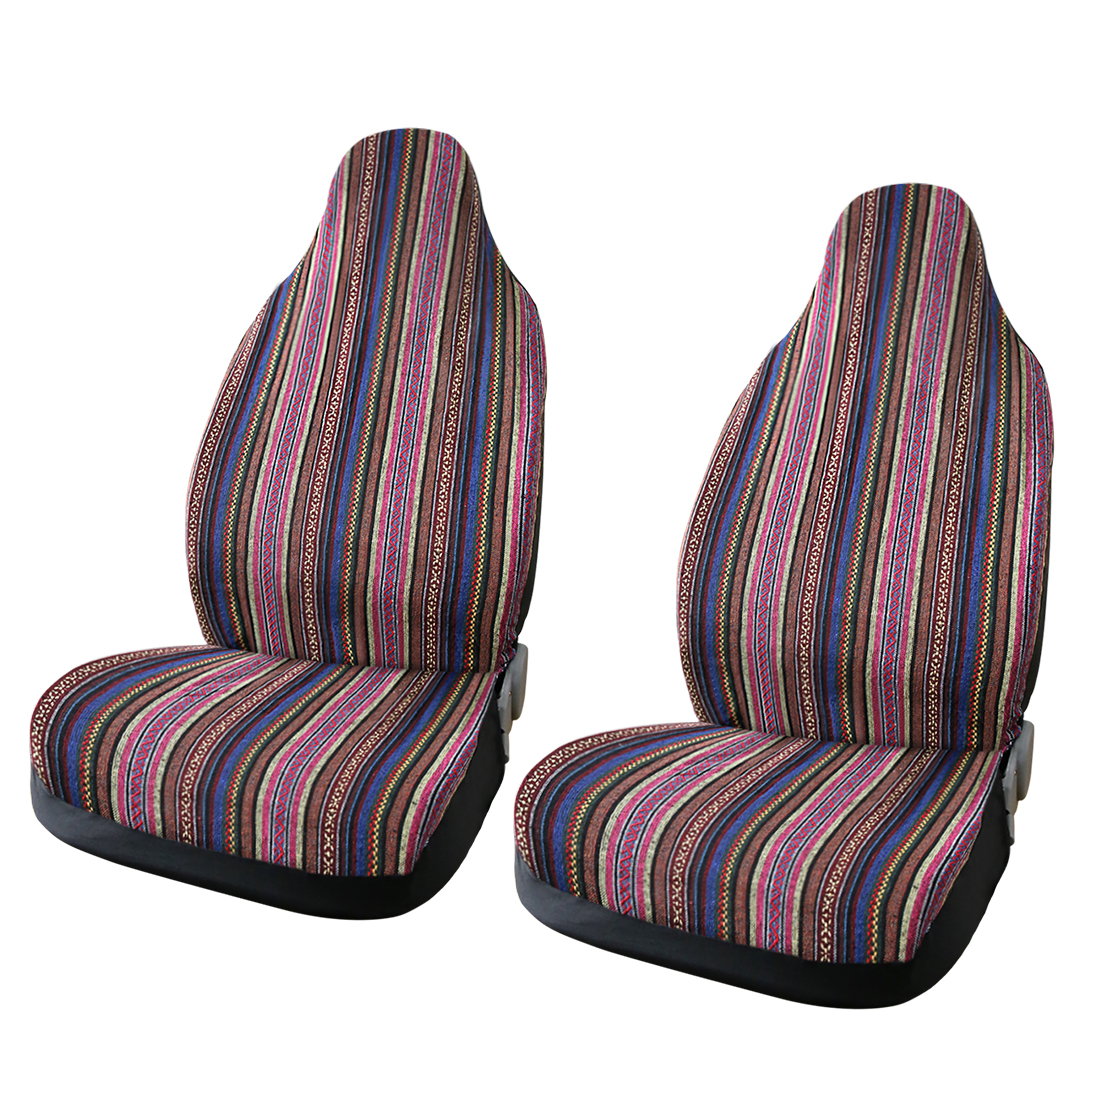 2pcs Universal Fit Baja Blanket Vivid Bucket Seat Cover Protector for Auto Car Truck